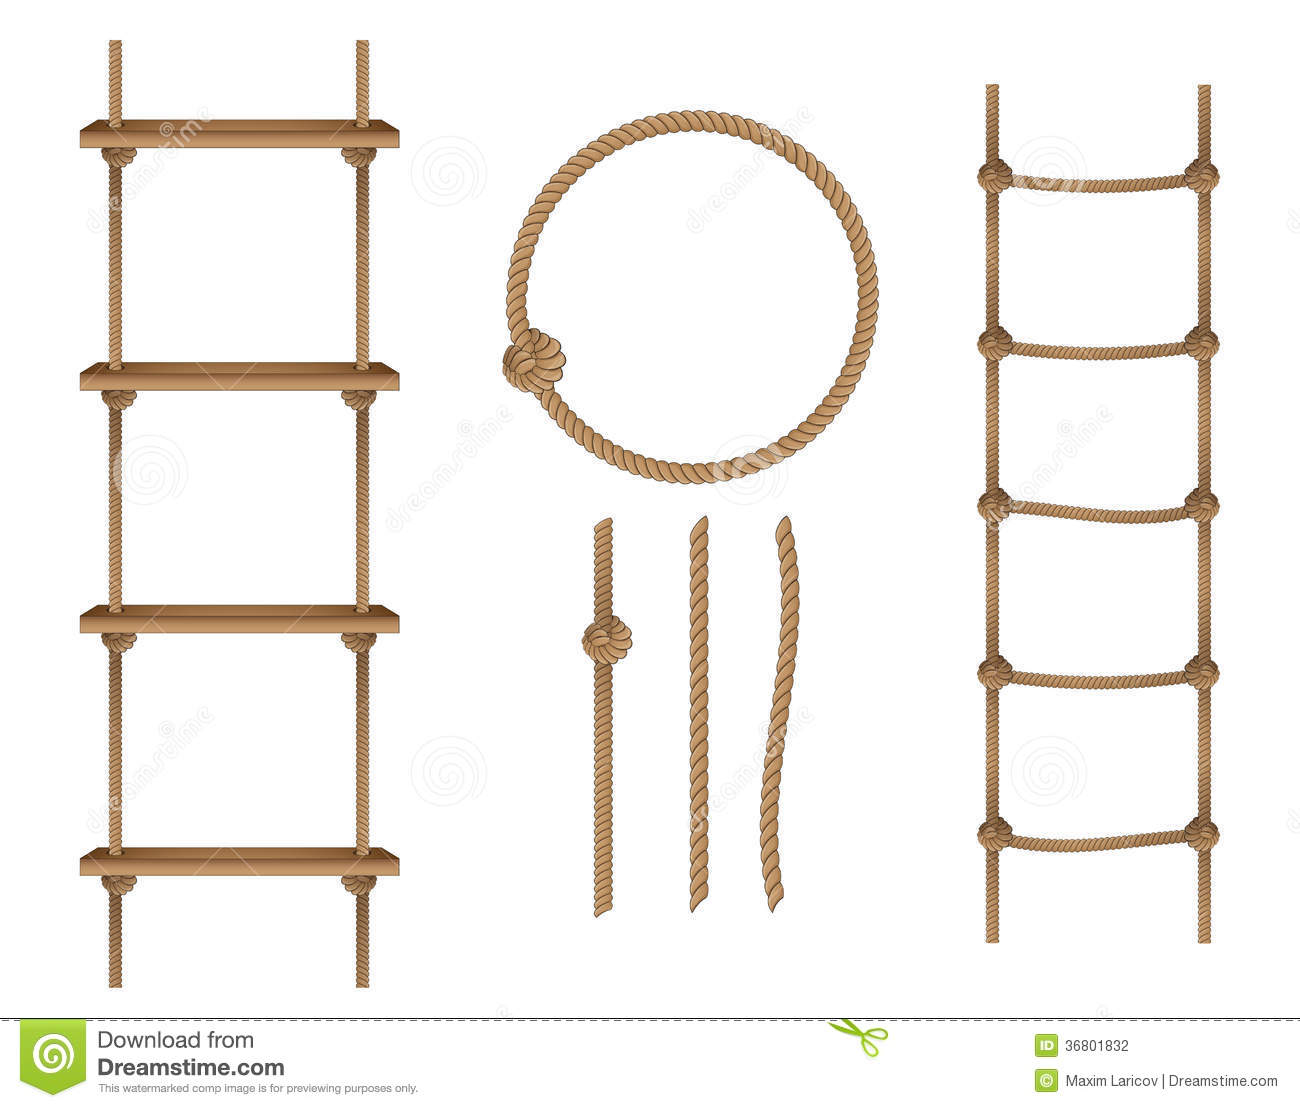 Rope ladder clipart - Clipground for Rope Ladder Knot  45hul